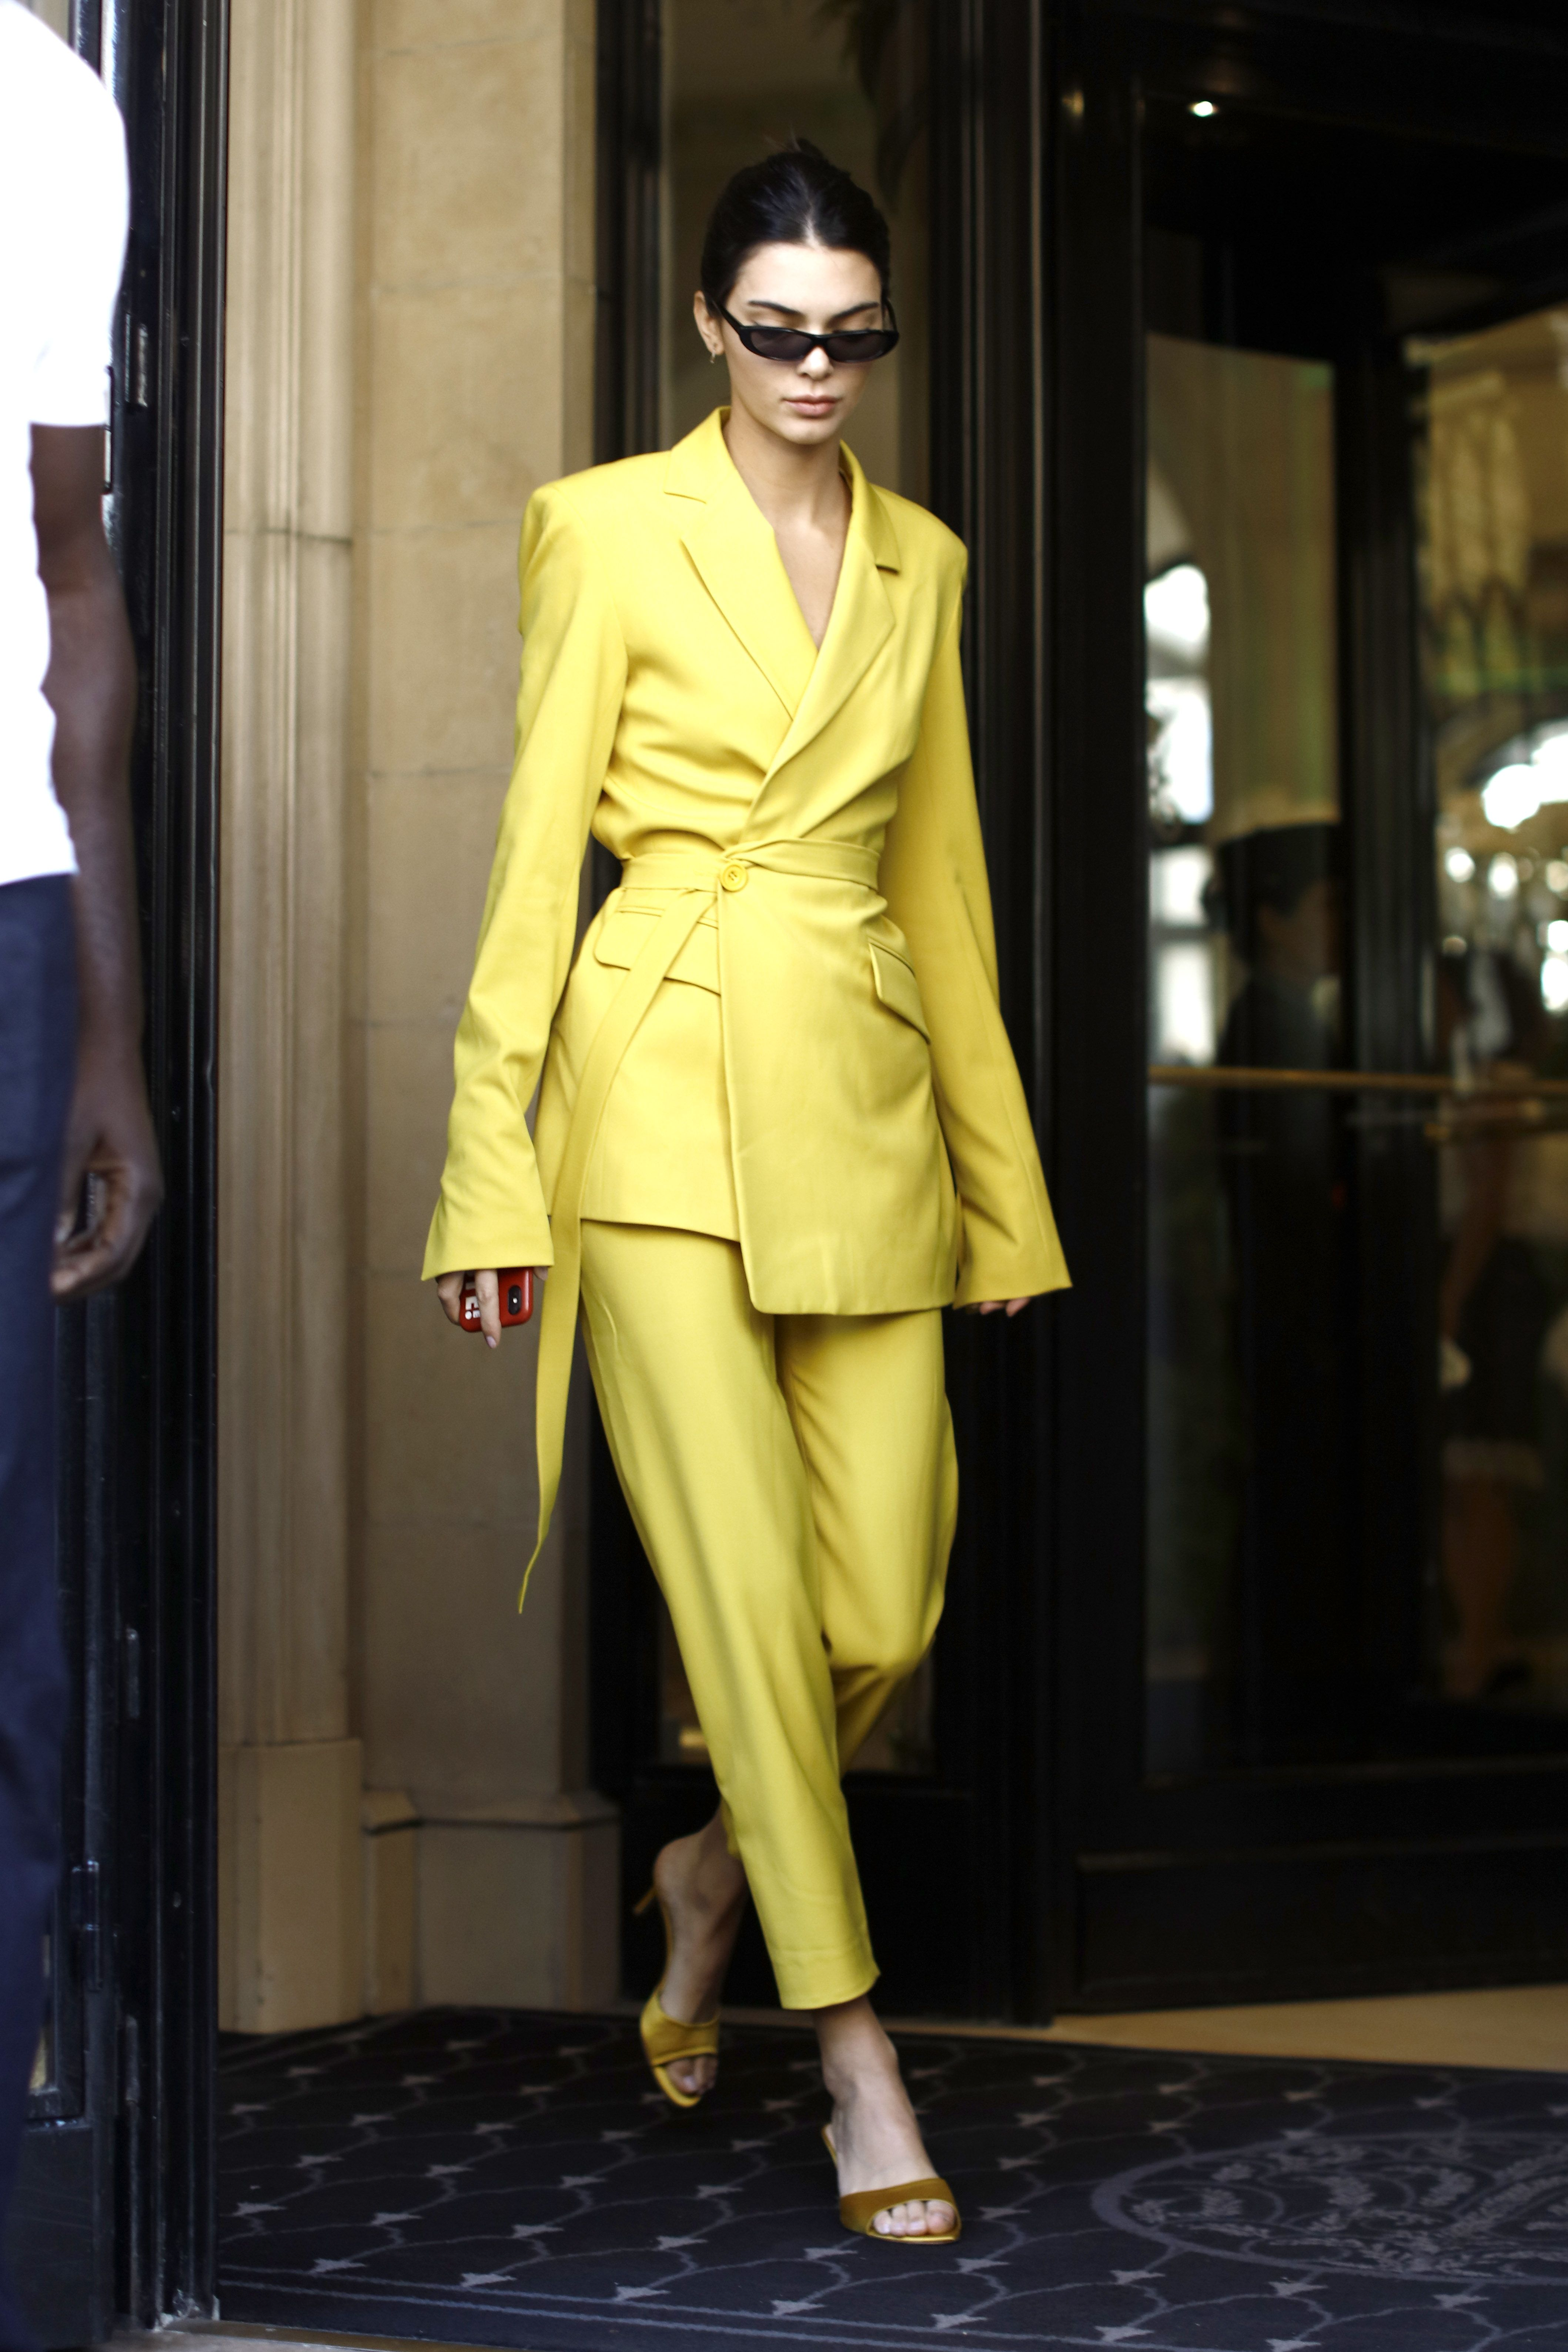 Kendall Jenner House of Holland yellow suit